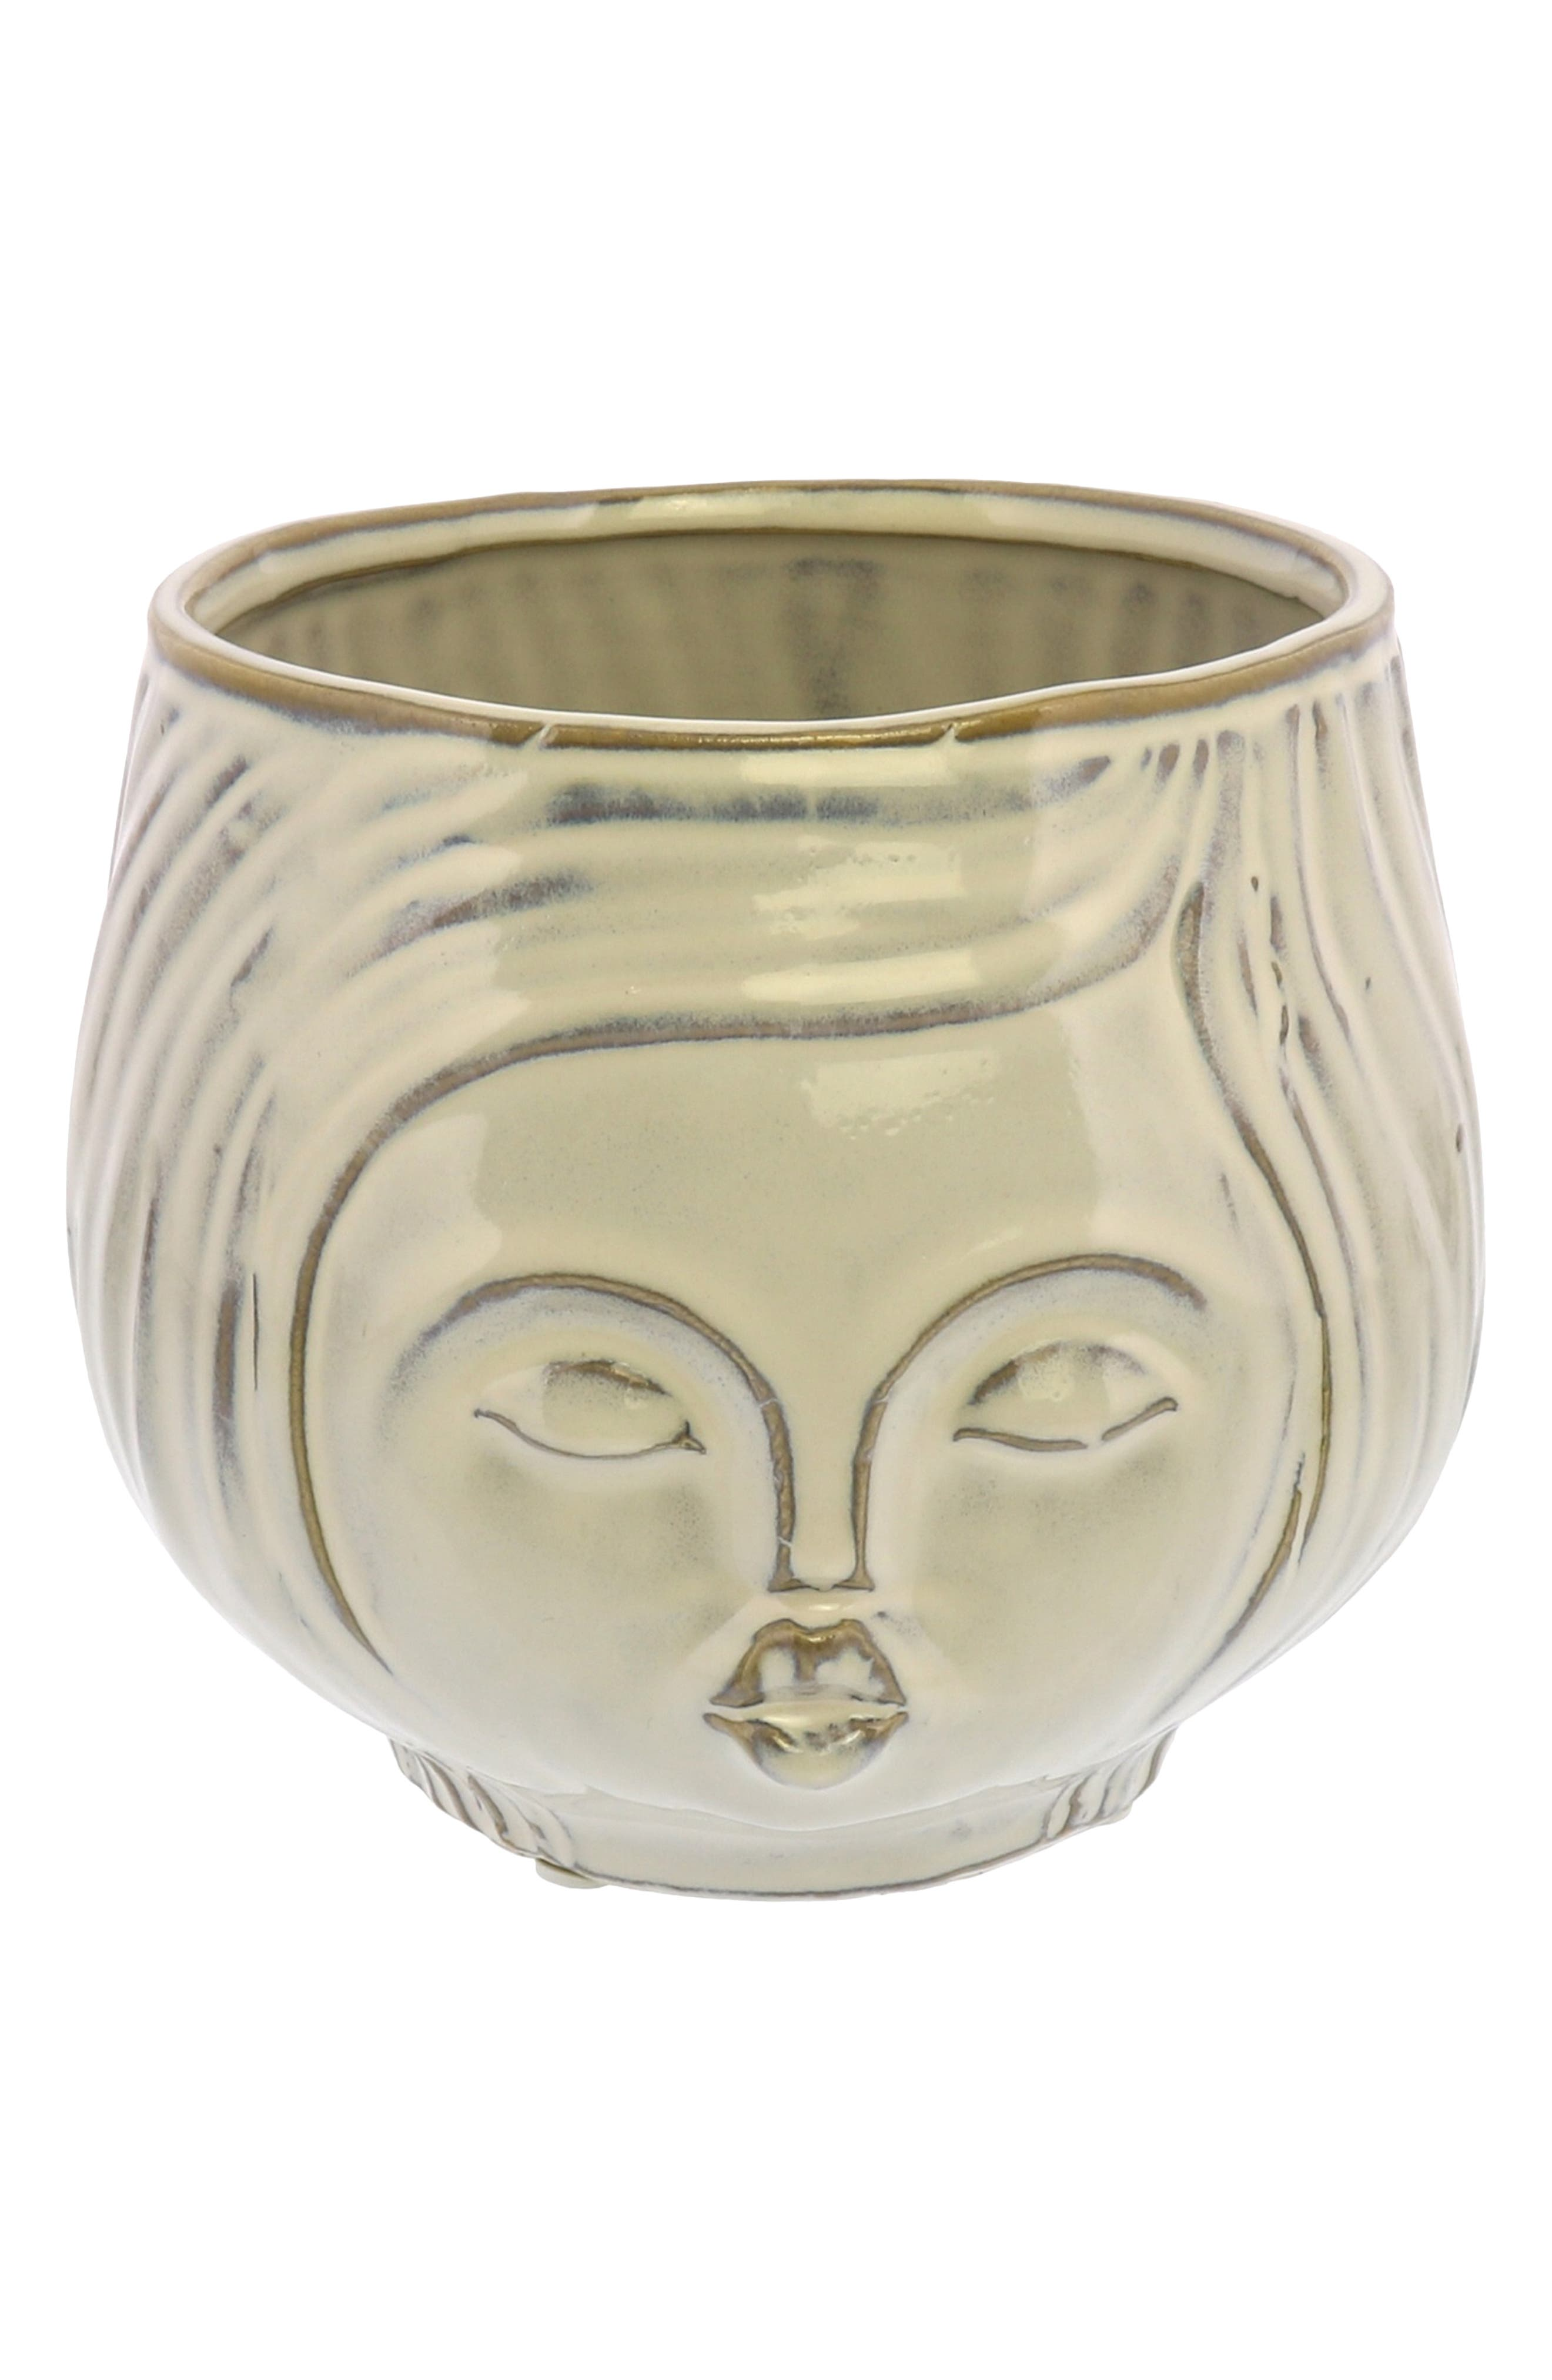 Your favorite succulents or fresh blooms will become a fun and funky hairdo for this gussied-up face pot with a creamy white glaze. Style Name: Homart Pucker Up Ceramic Vase. Style Number: 6123283. Available in stores.